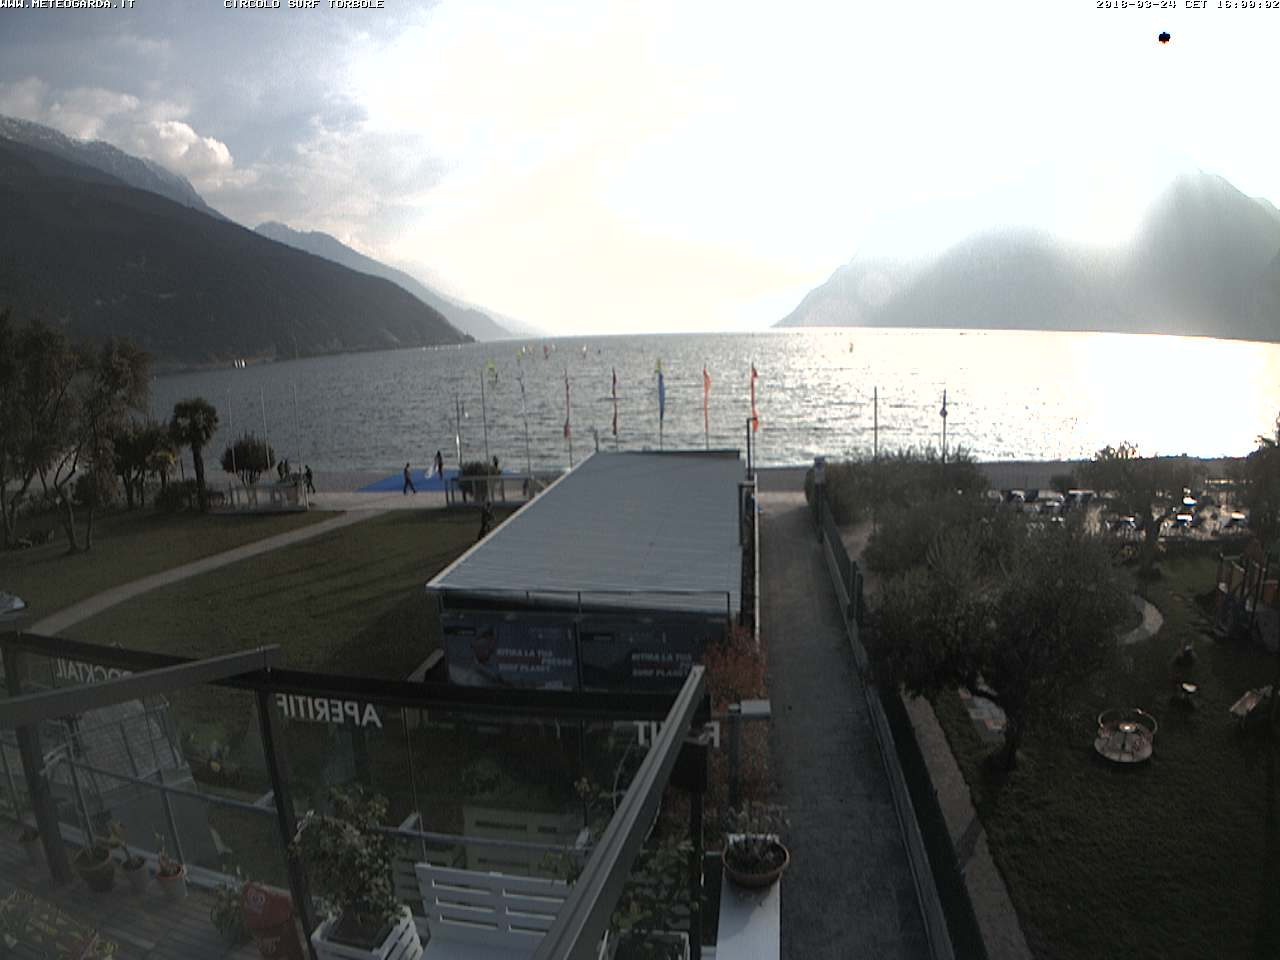 Surfschule Circolo Surf in Torbole - meteogarda.it